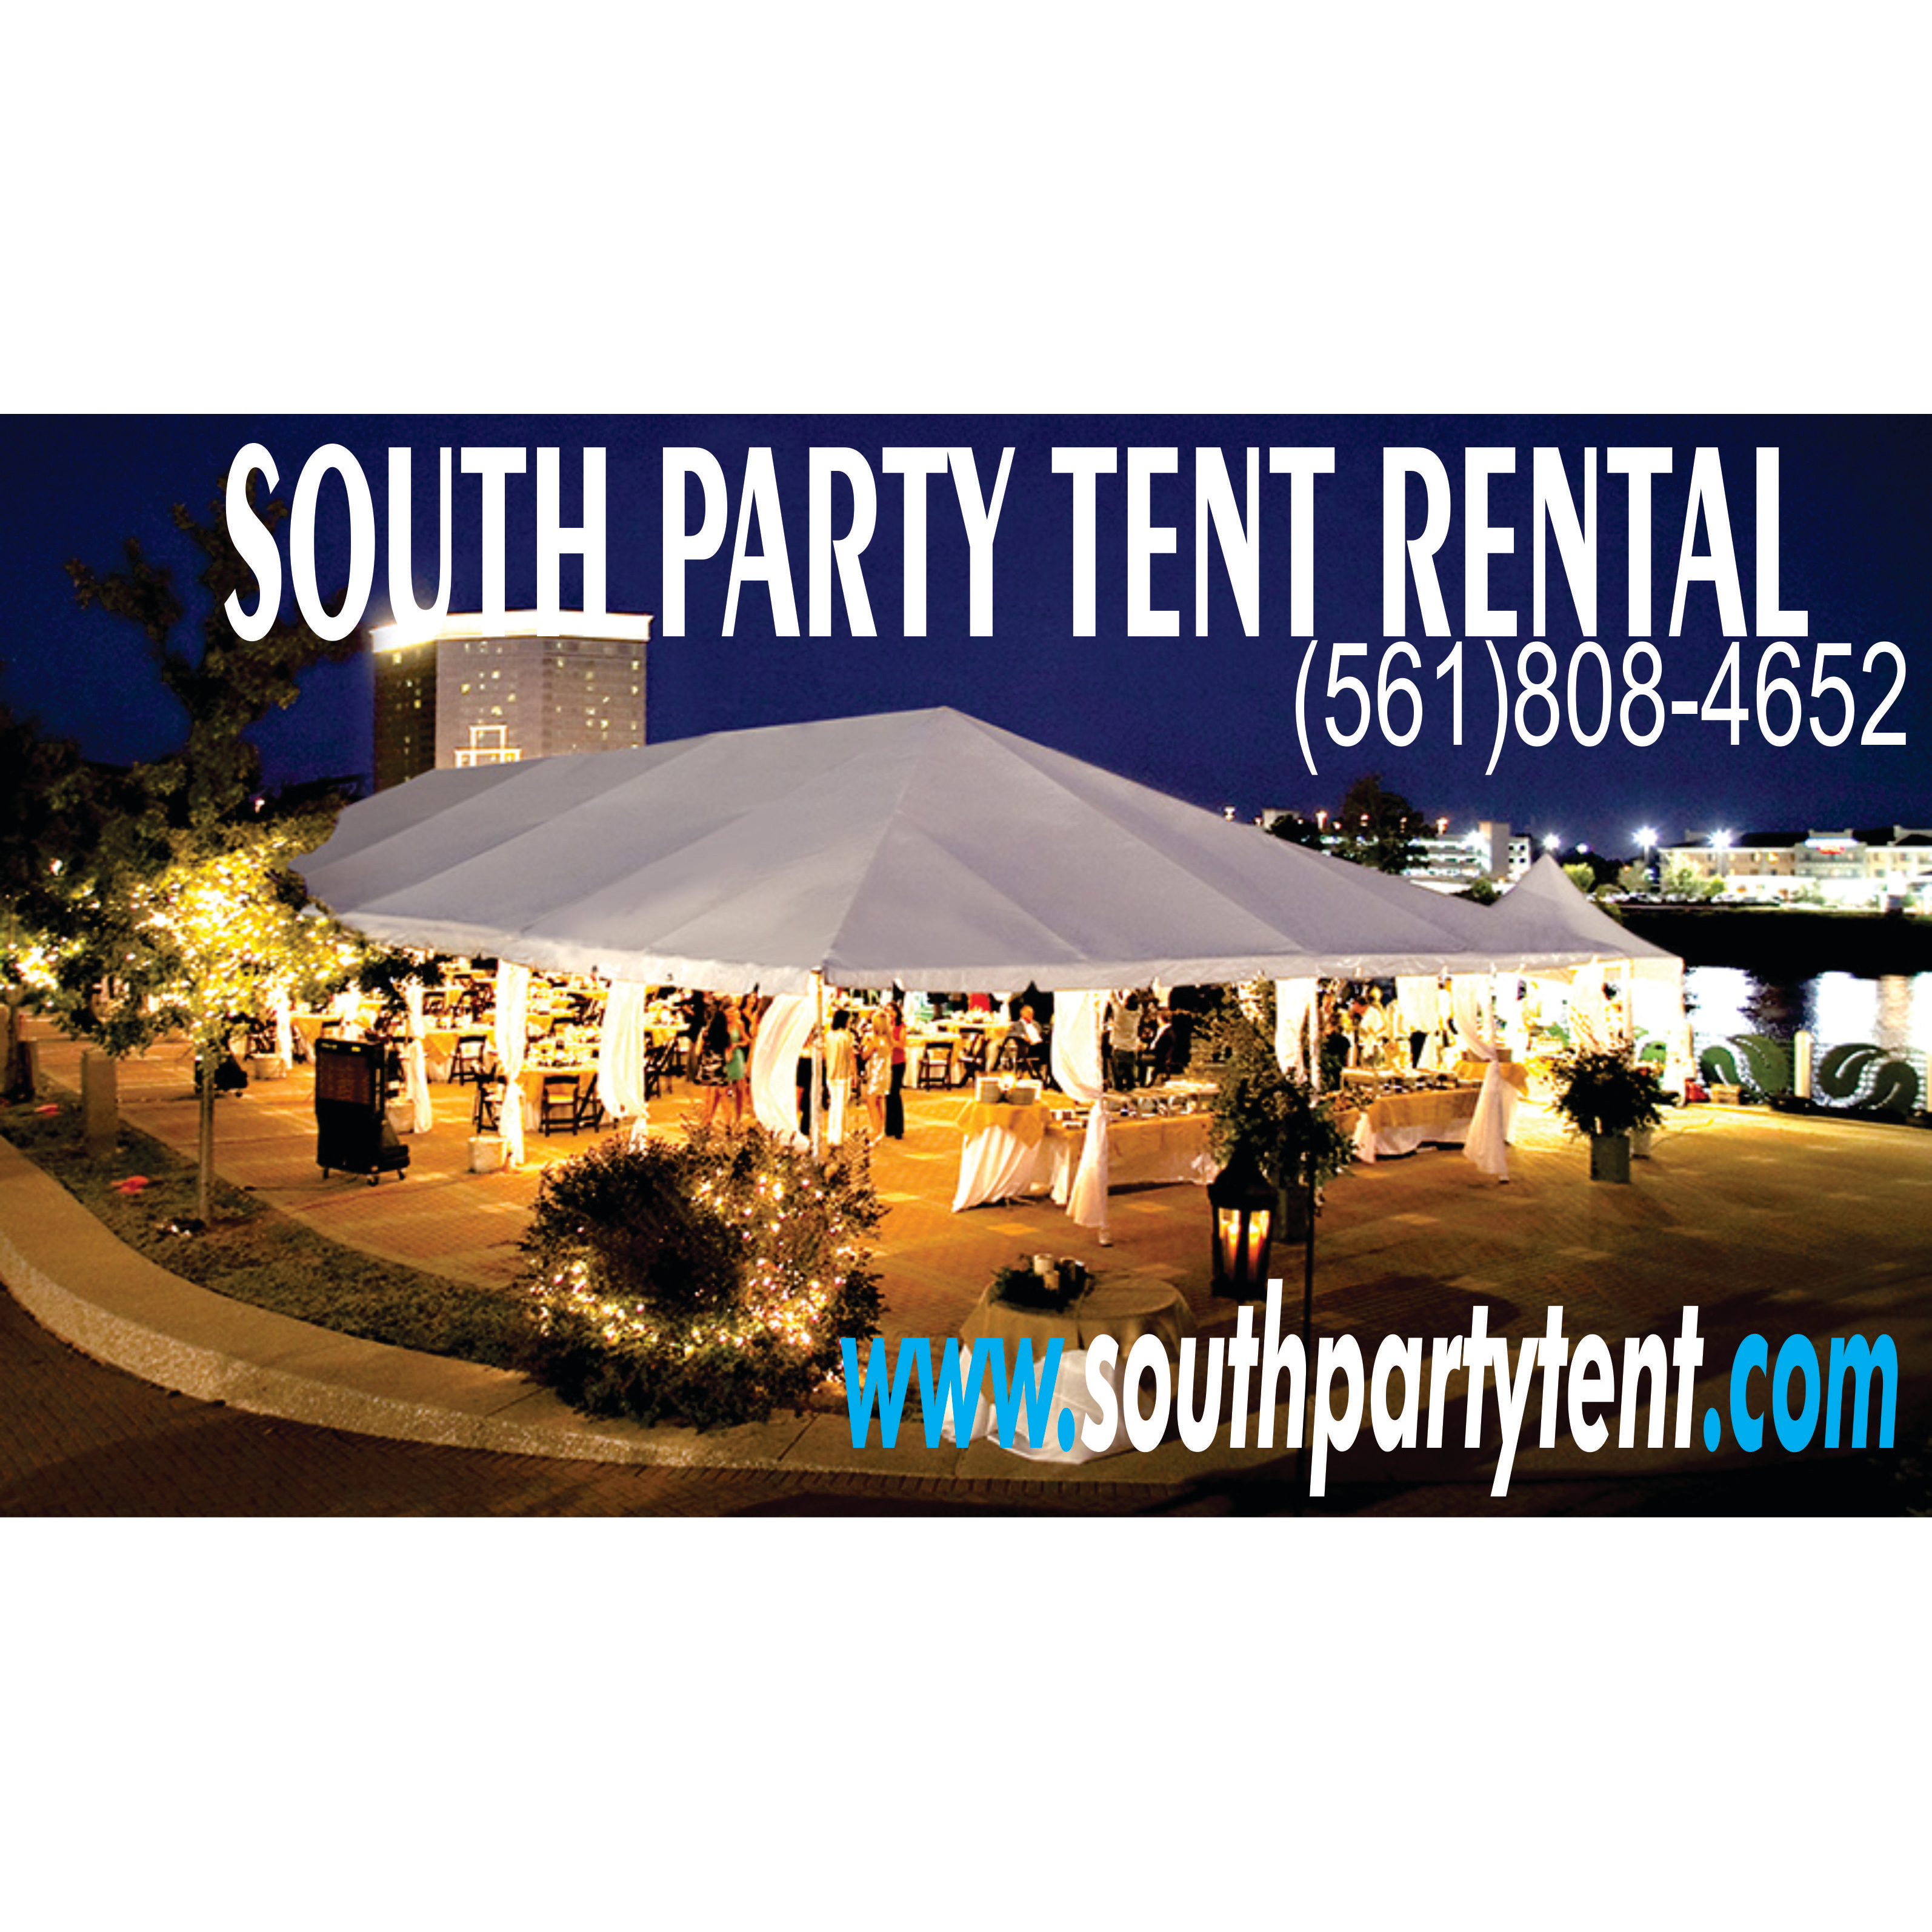 South party tent rental in west palm beach fl whitepages for Table 52 west palm beach